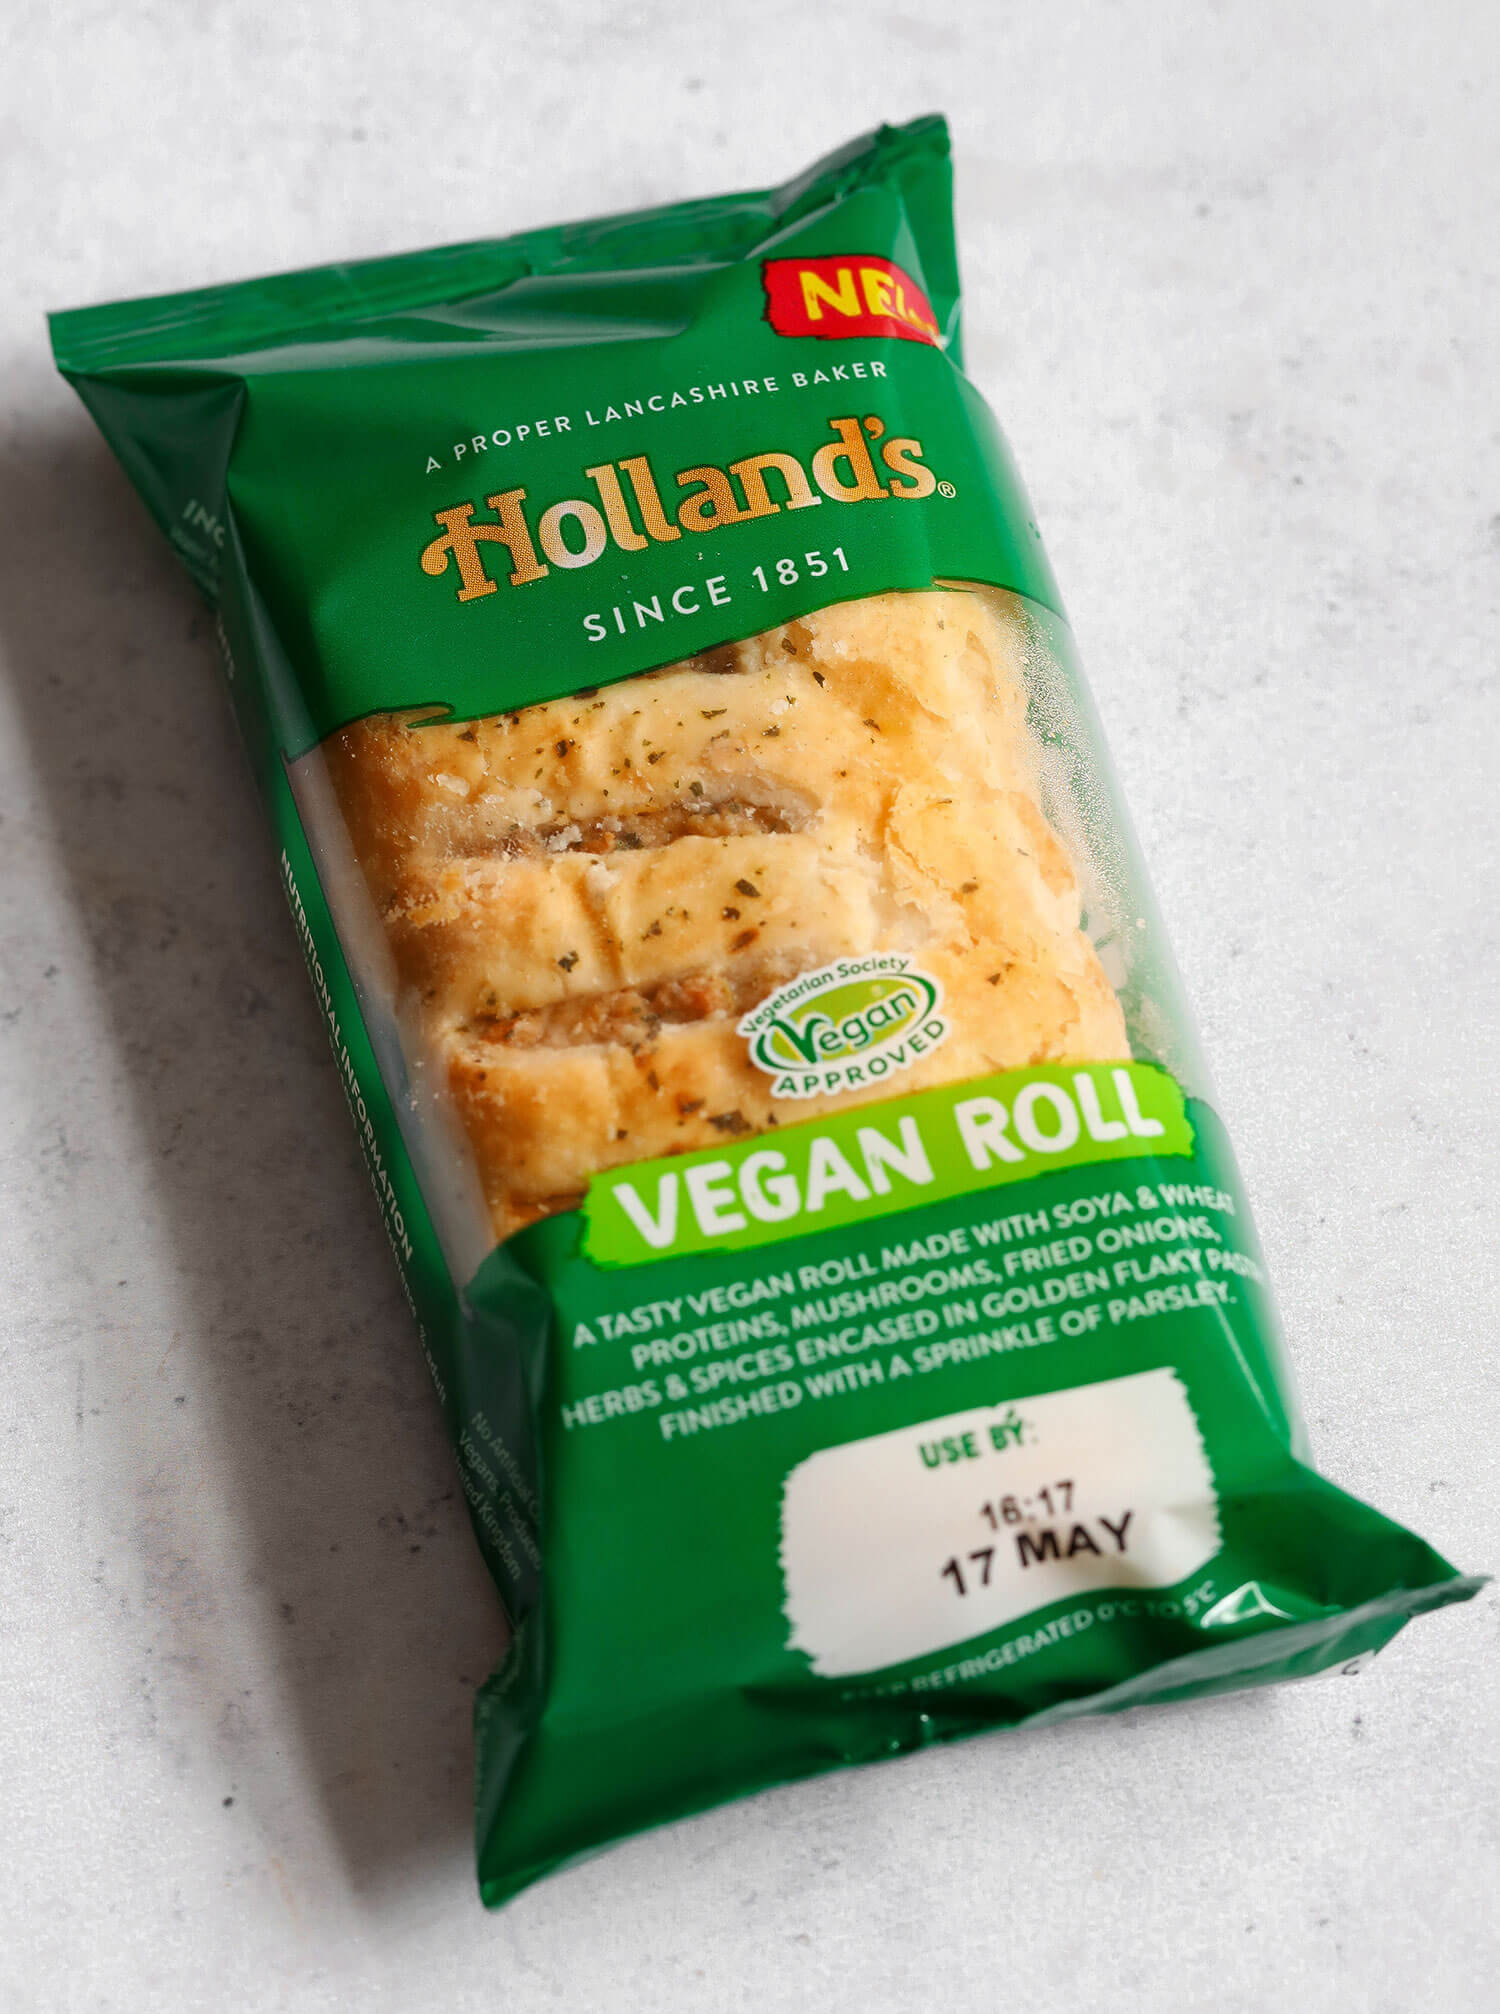 Revisão do rolo de salsicha vegana de tortas da Holanda - UK Health Blog 4